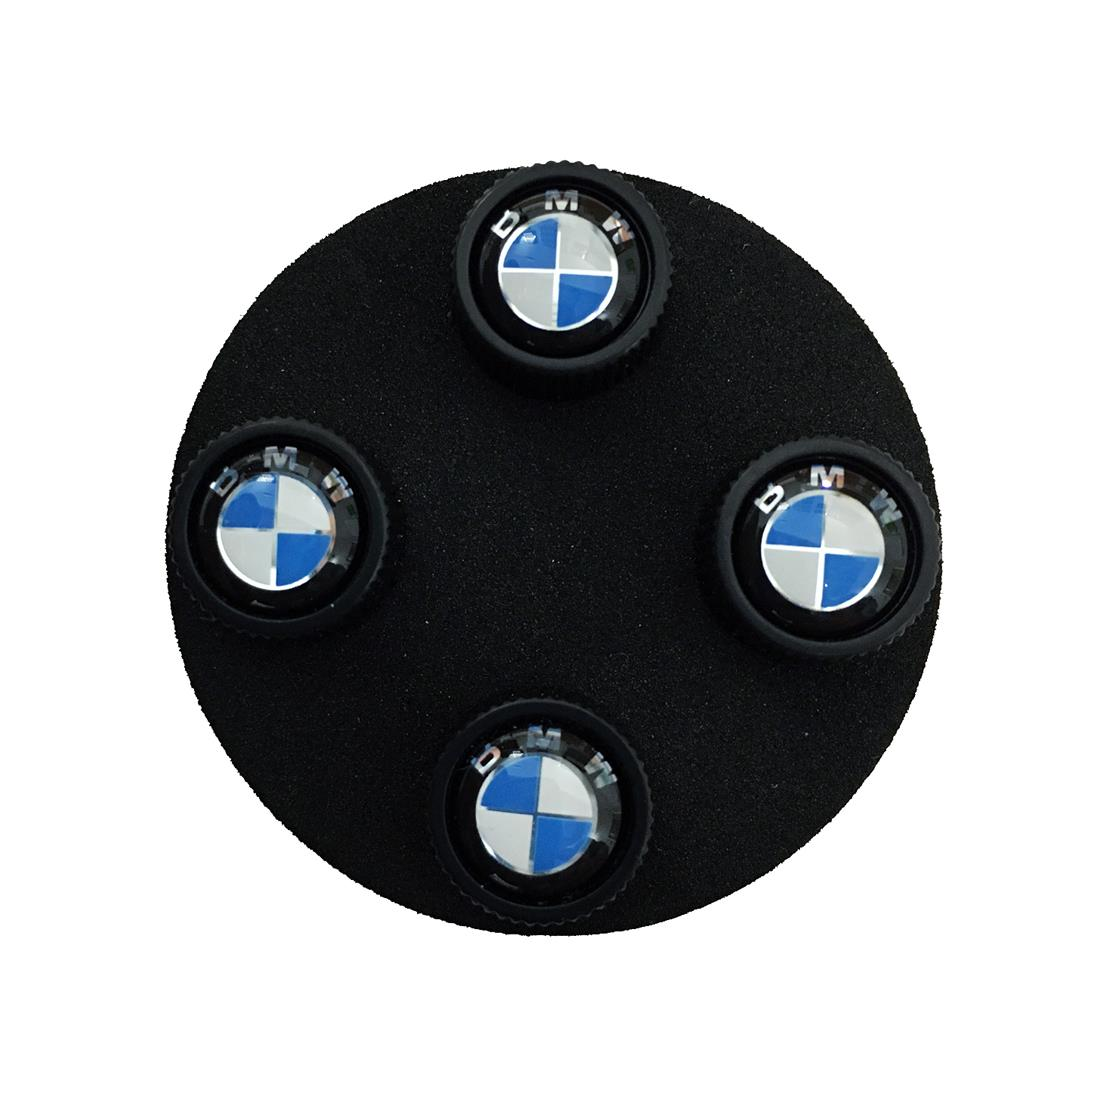 BMW Roundel Valve Stem Caps, Black